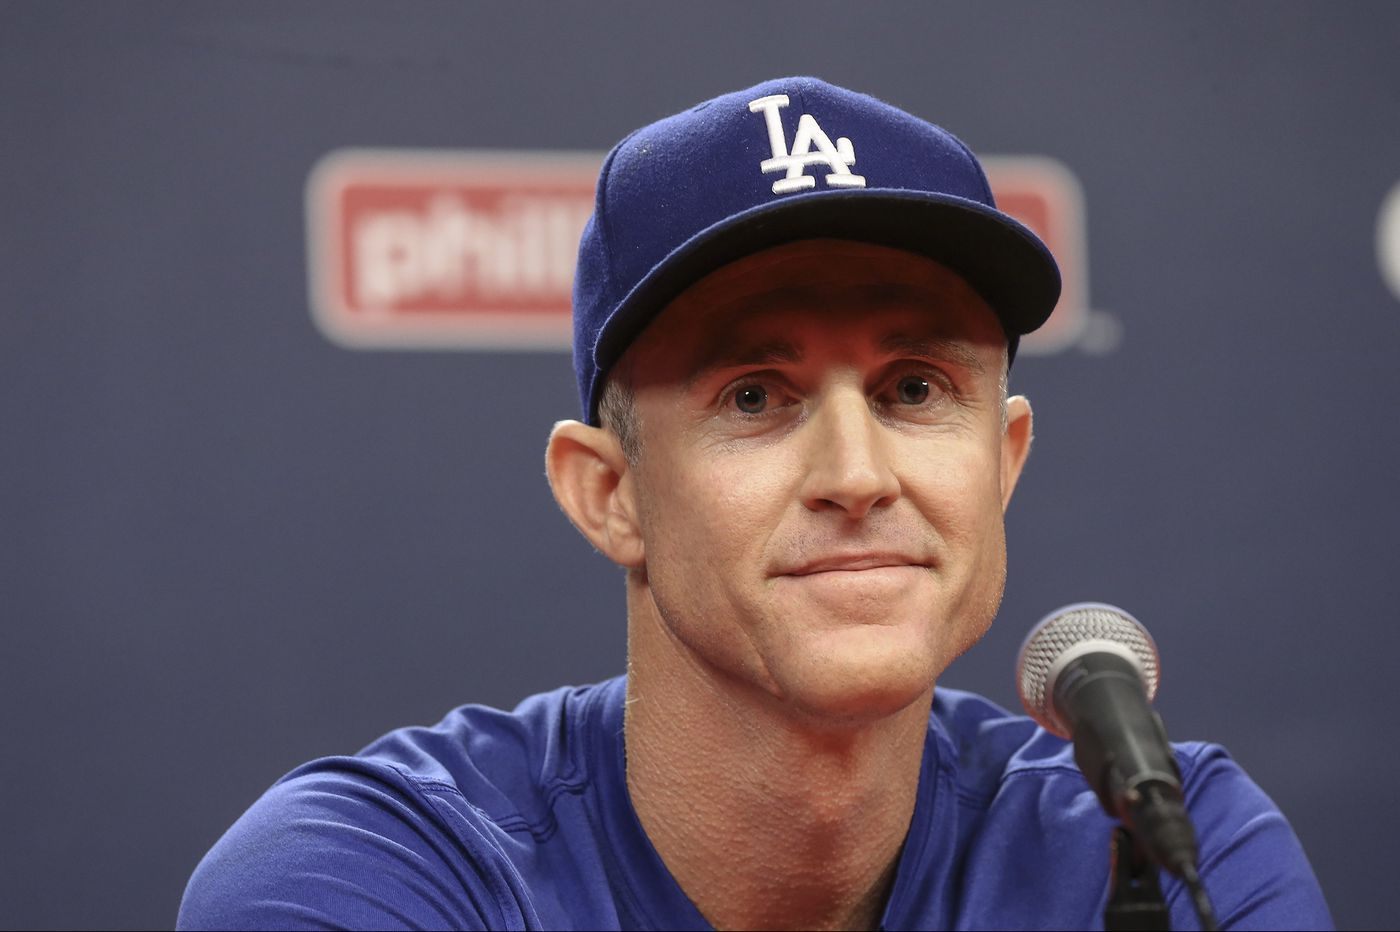 The Dodgers player (Enrique Hernandez) who calls Chase Utley 'Dad'